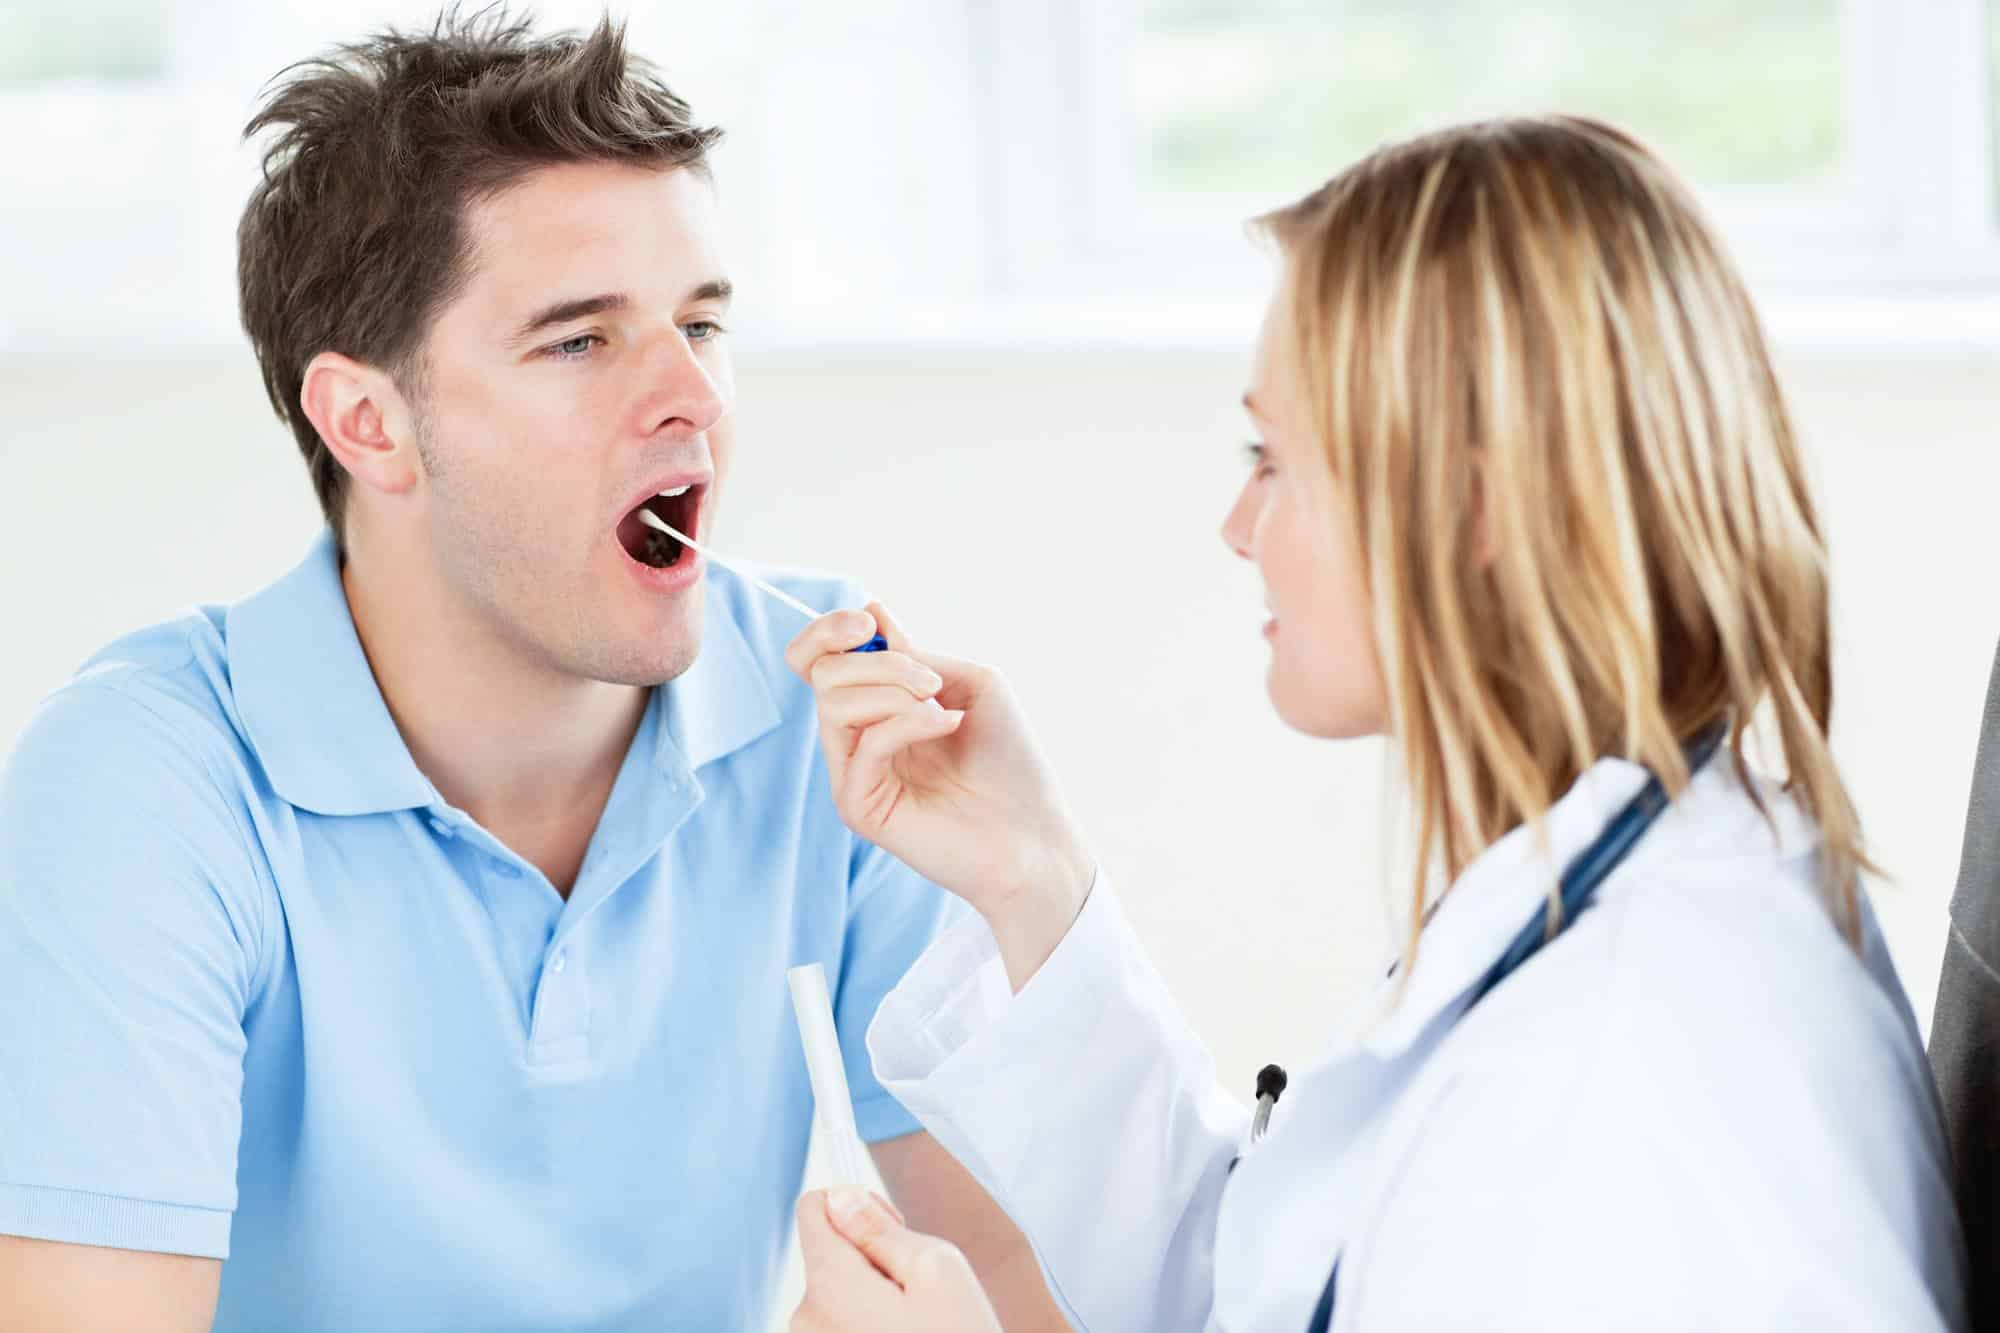 Causes of excessive saliva in the mouth